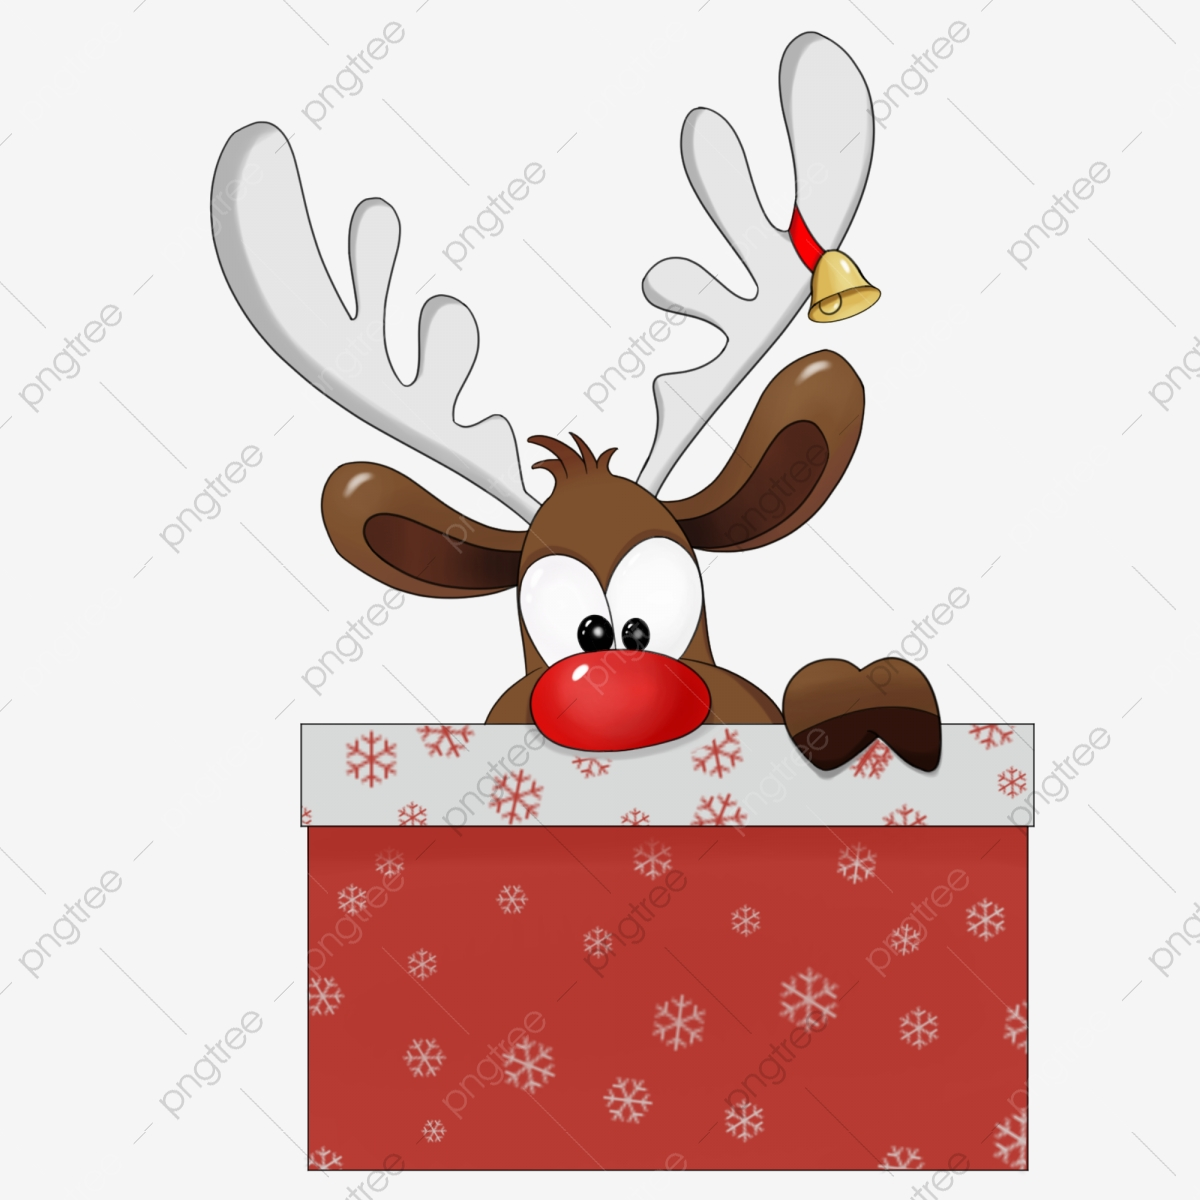 Collection of Christmas Deer - Illustration Clipart Image